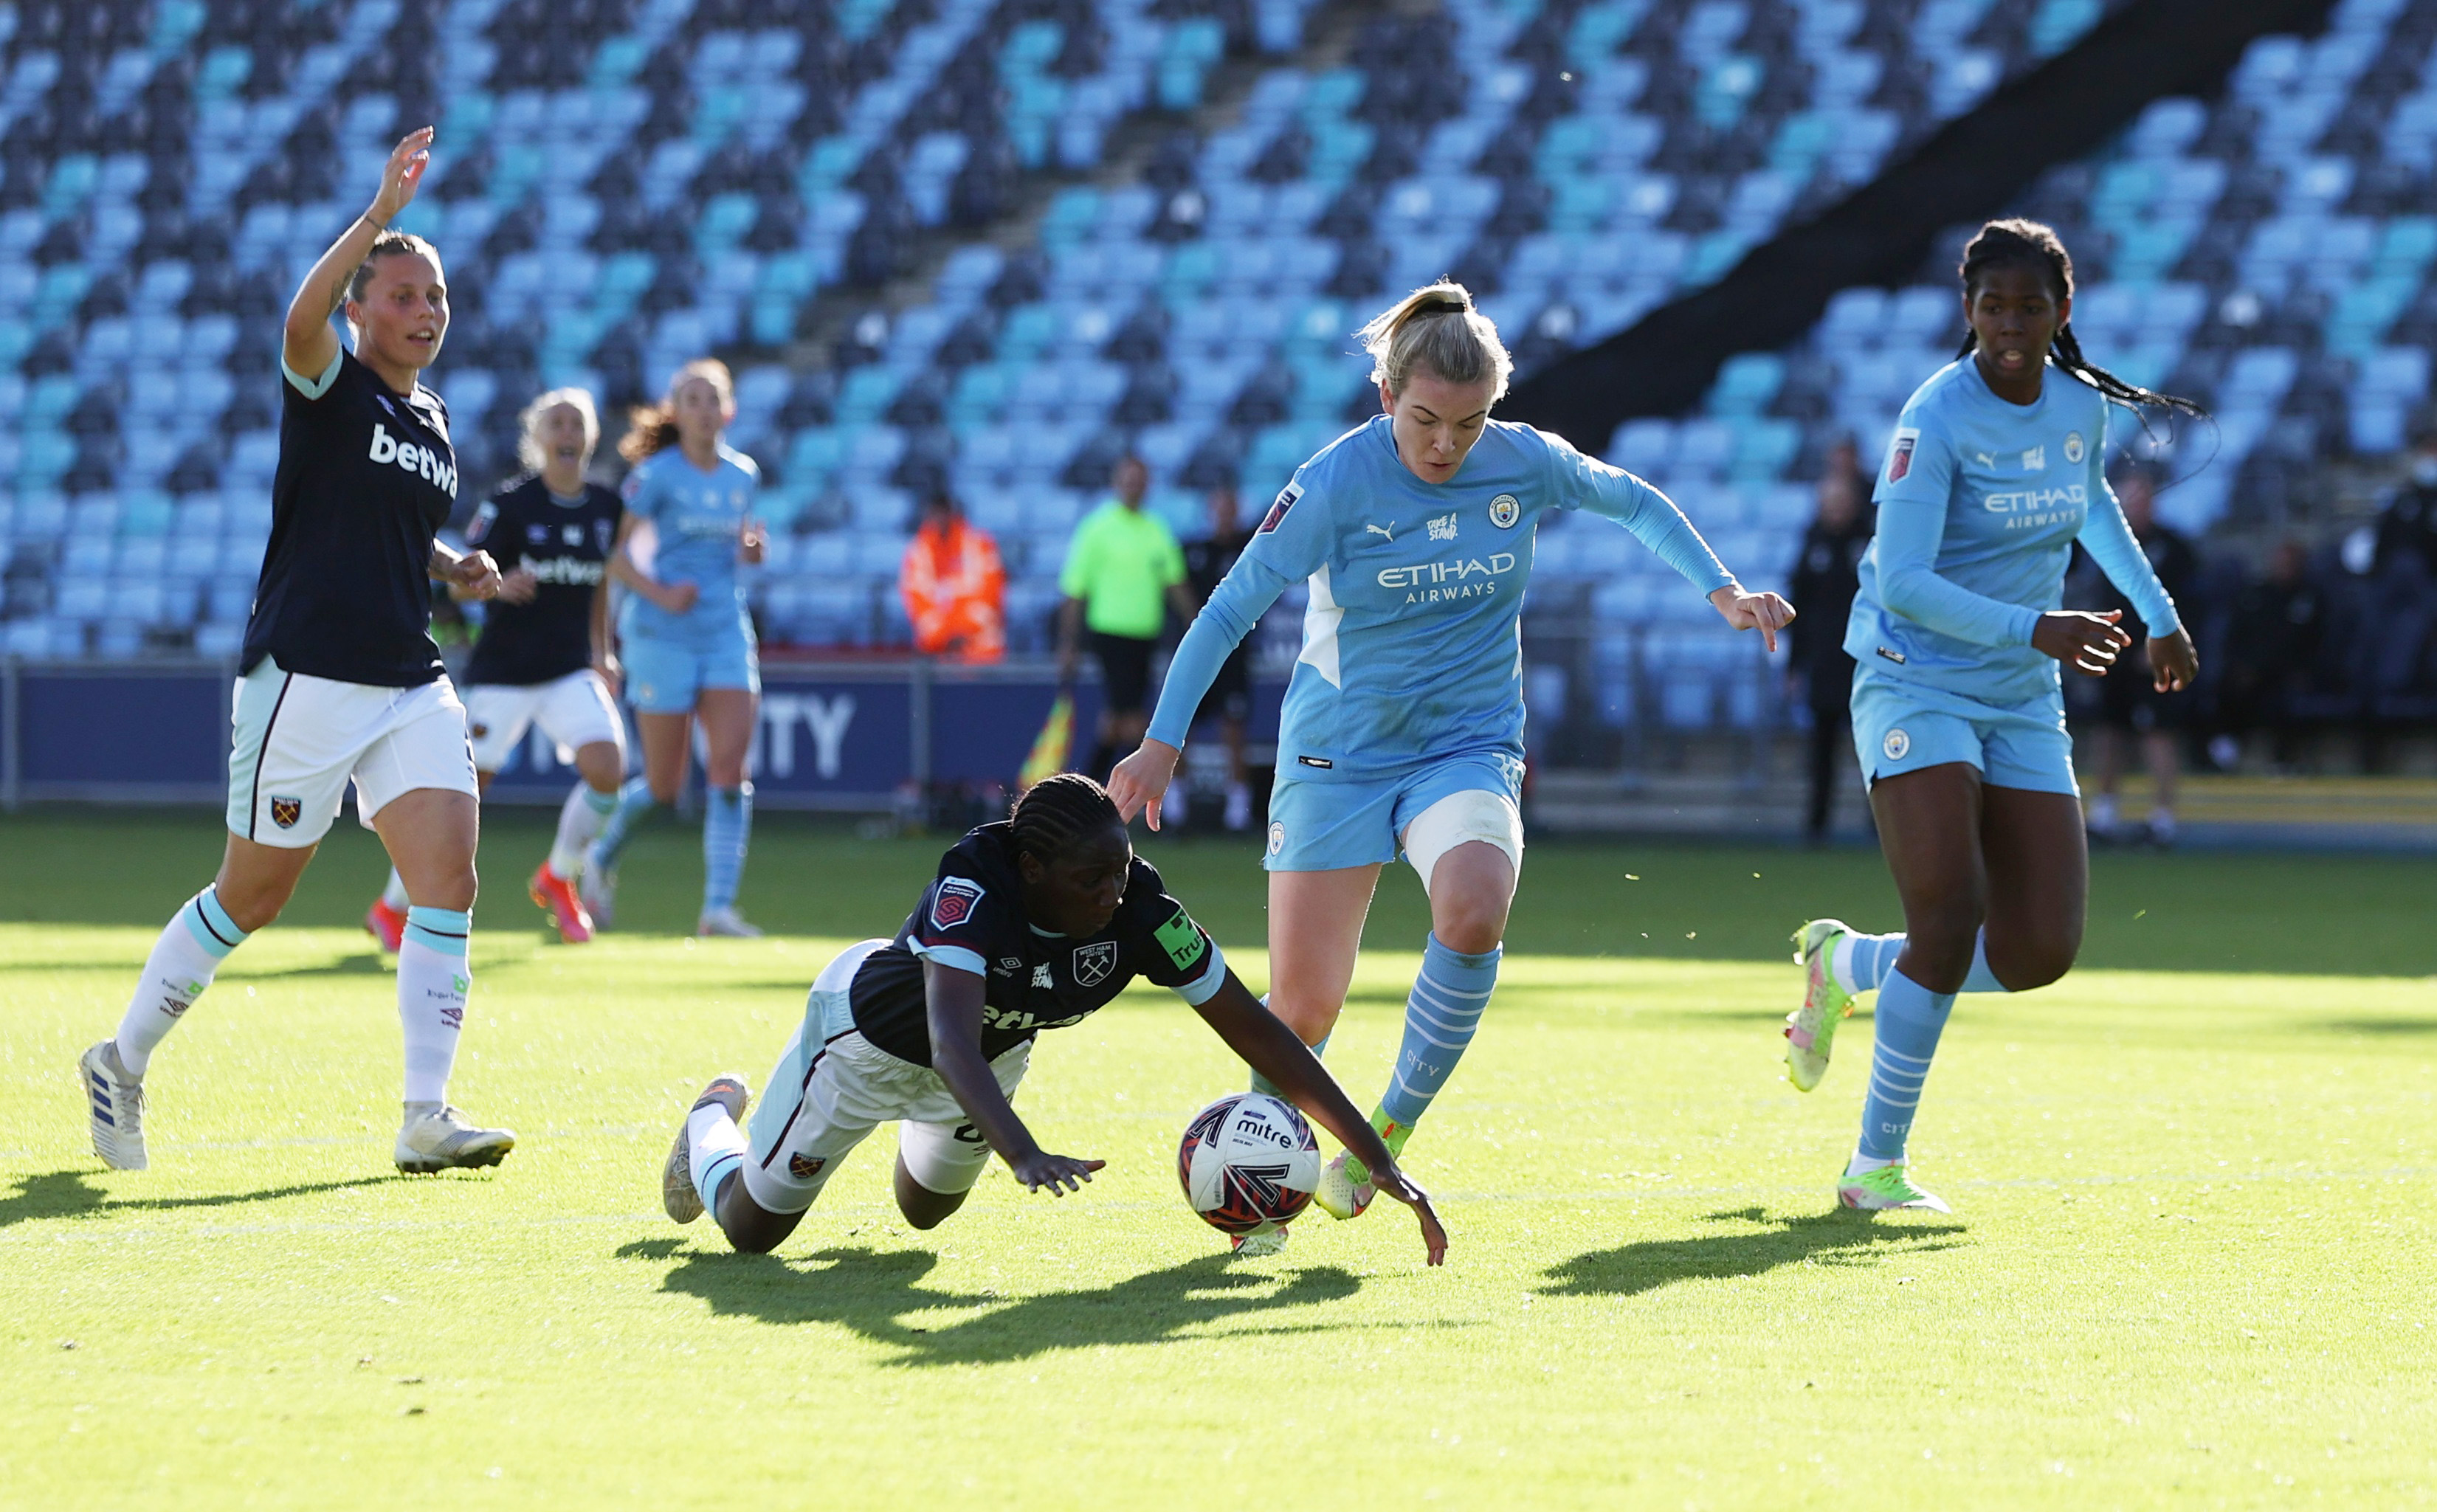 Soccer Football - Women's Super League - Manchester City v West Ham United - Manchester City Academy Stadium, Manchester, Britain - October 3, 2021 West Ham United's Hawa Cissoko in action with Manchester City's Lauren Hemp Action Images via Reuters/Lee Smith